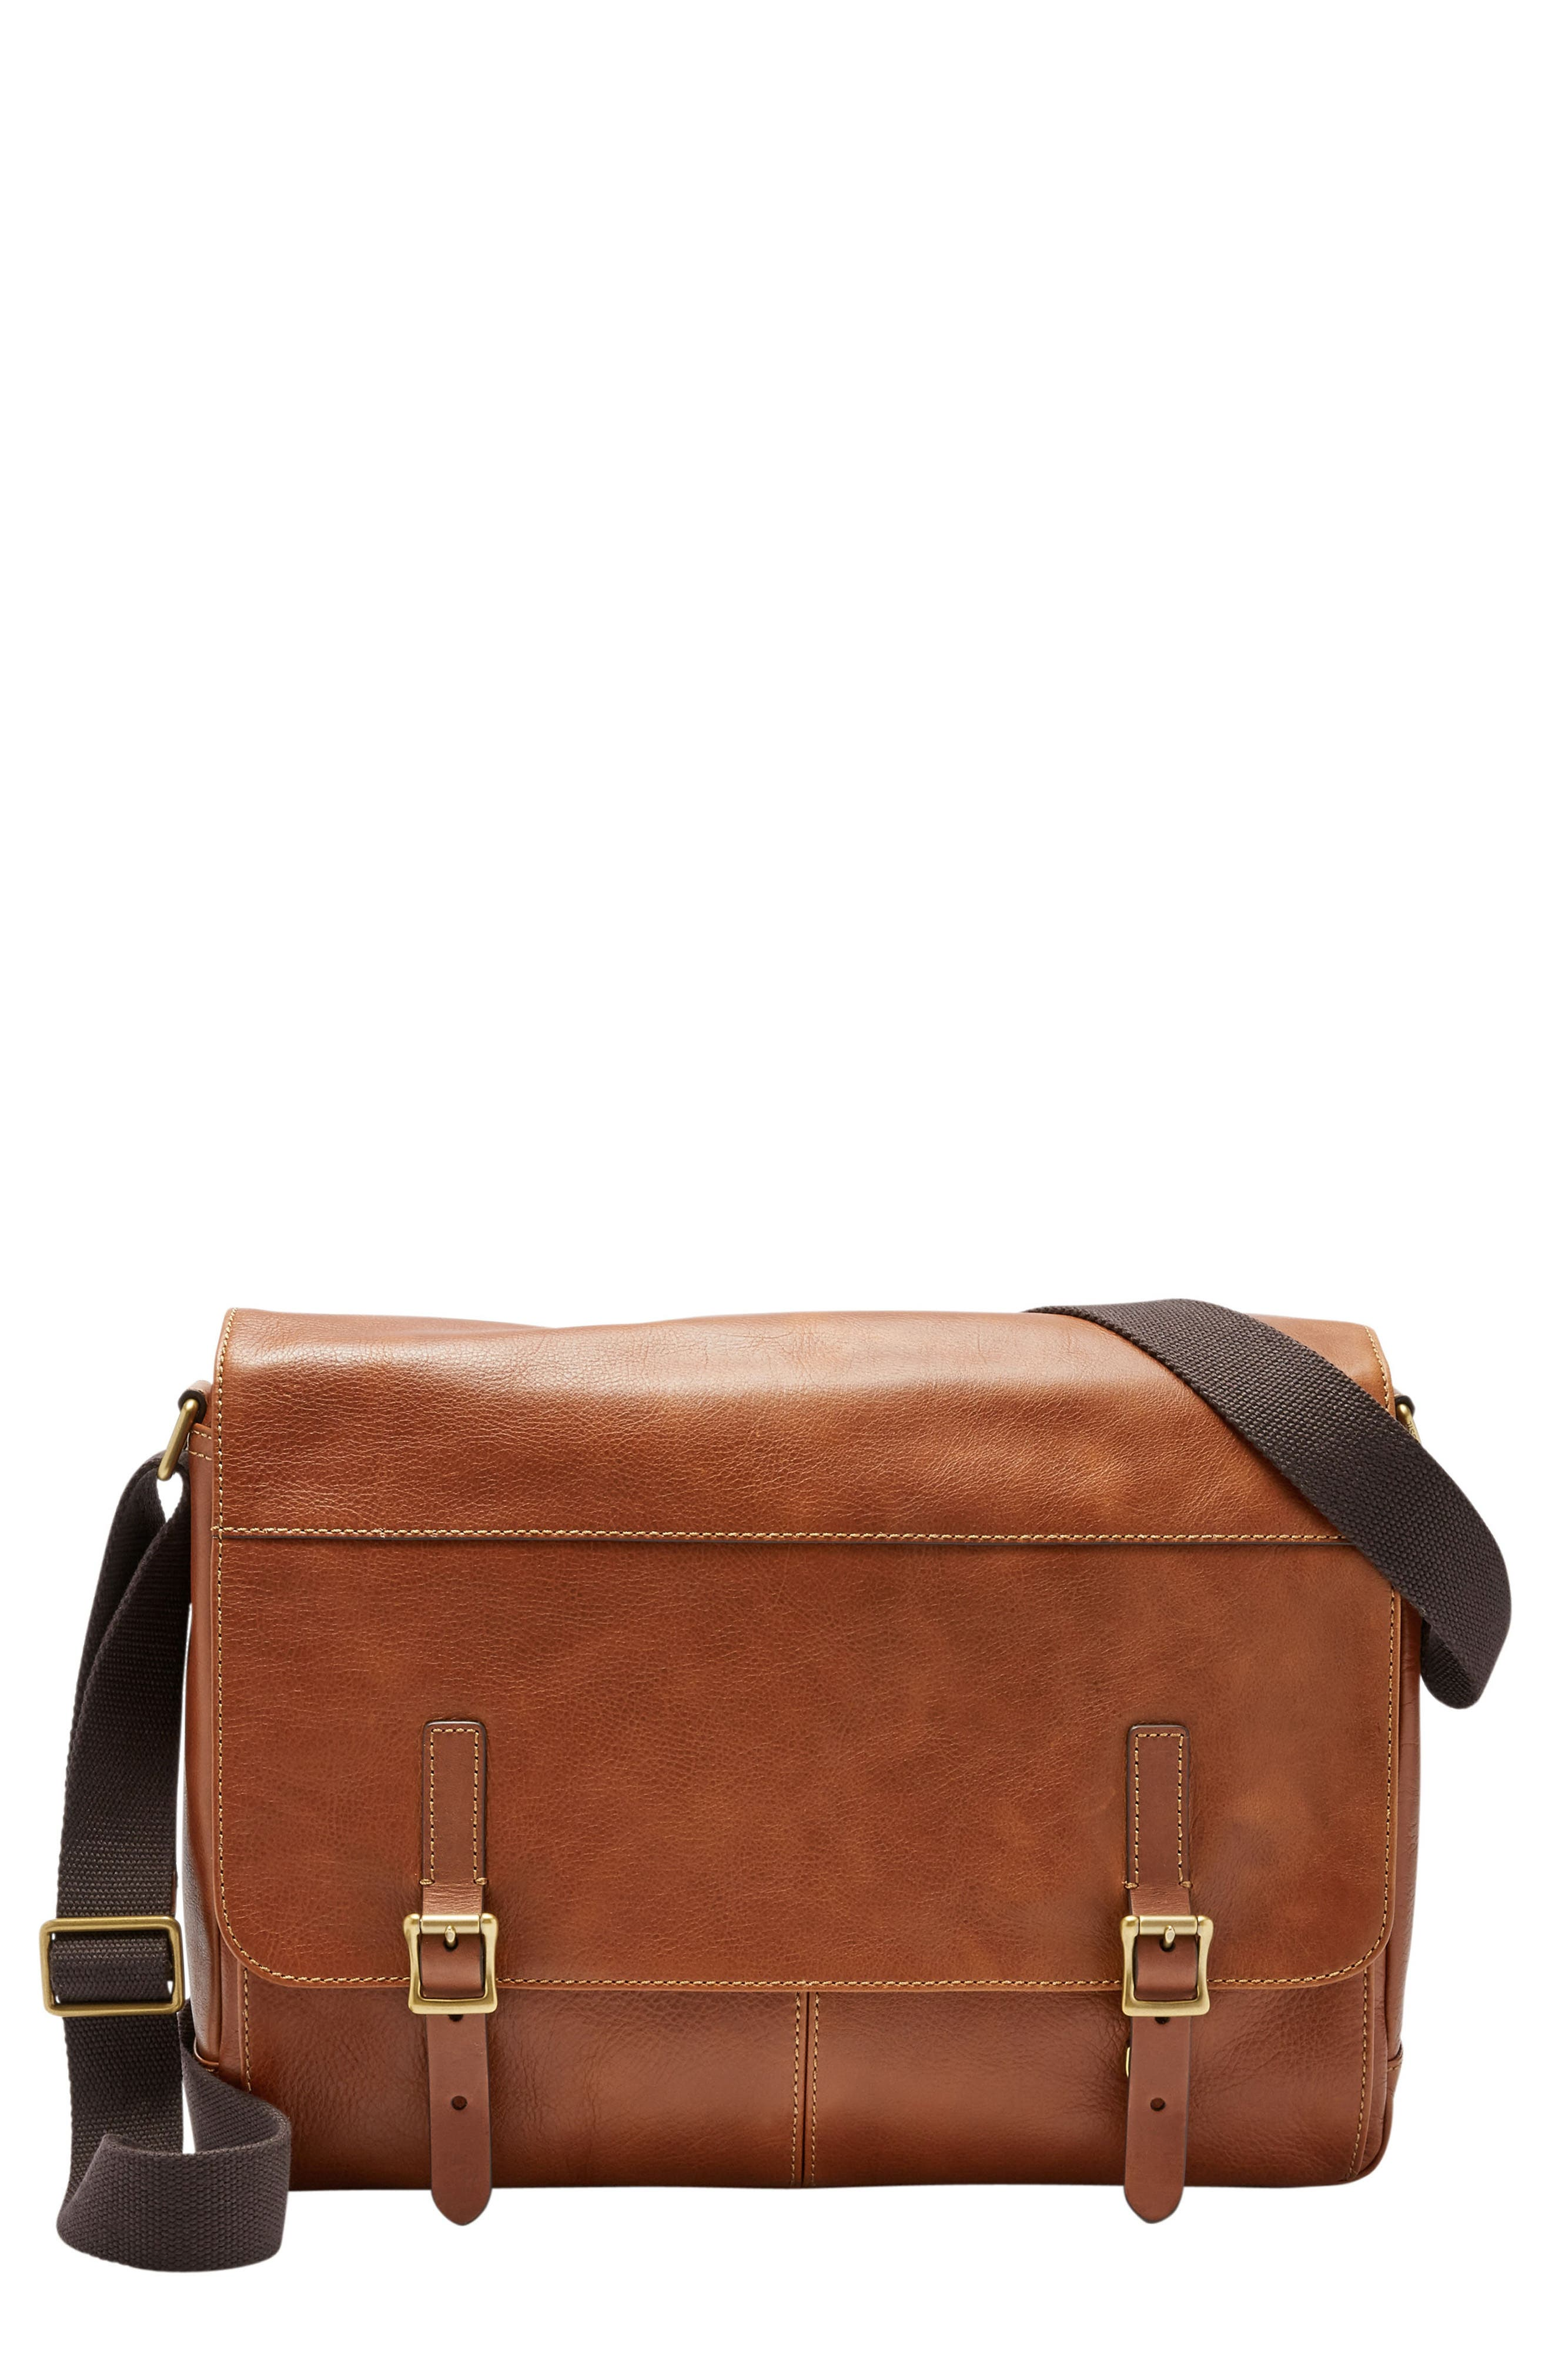 Main Image - Fossil 'Defender' Leather Messenger Bag